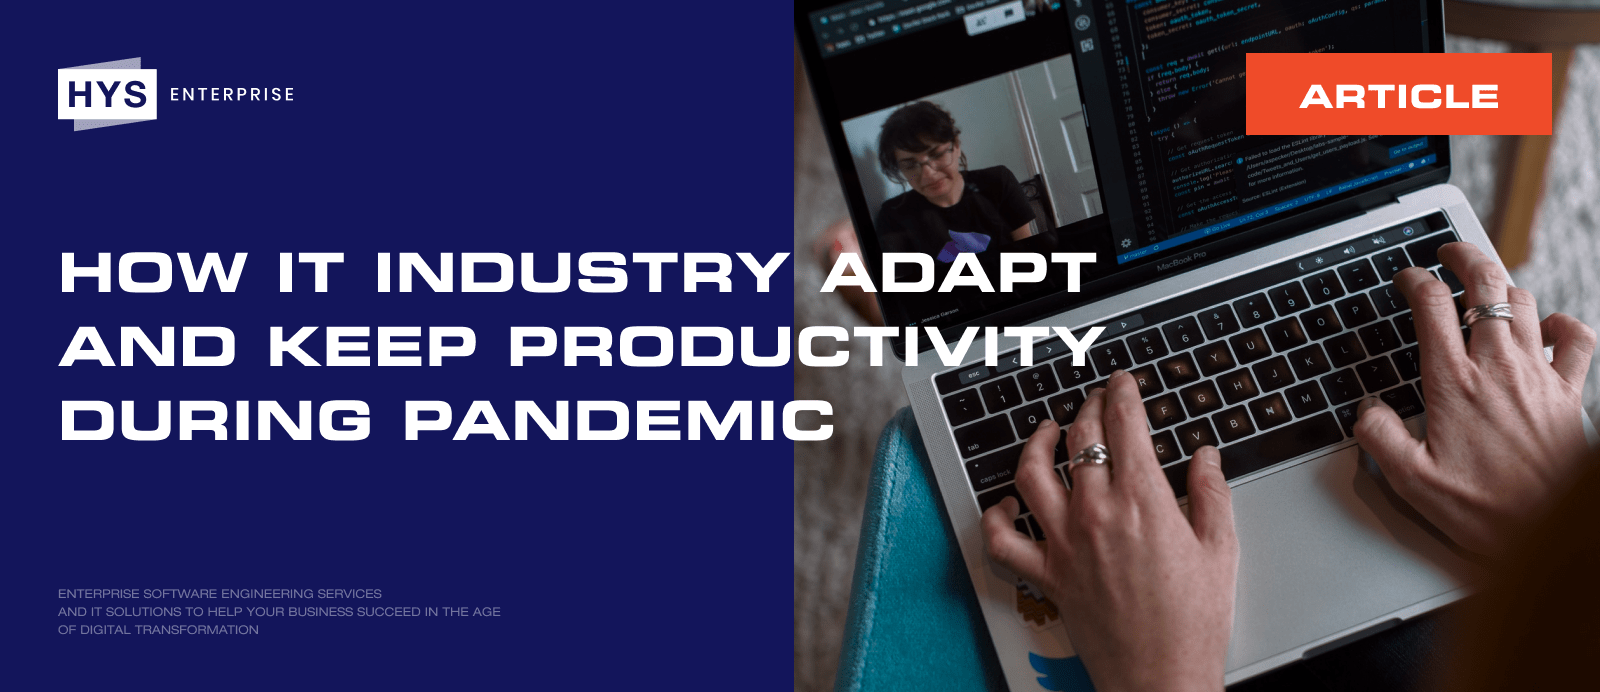 How IT Industry Adapt and Keep Productivity During Pandemic